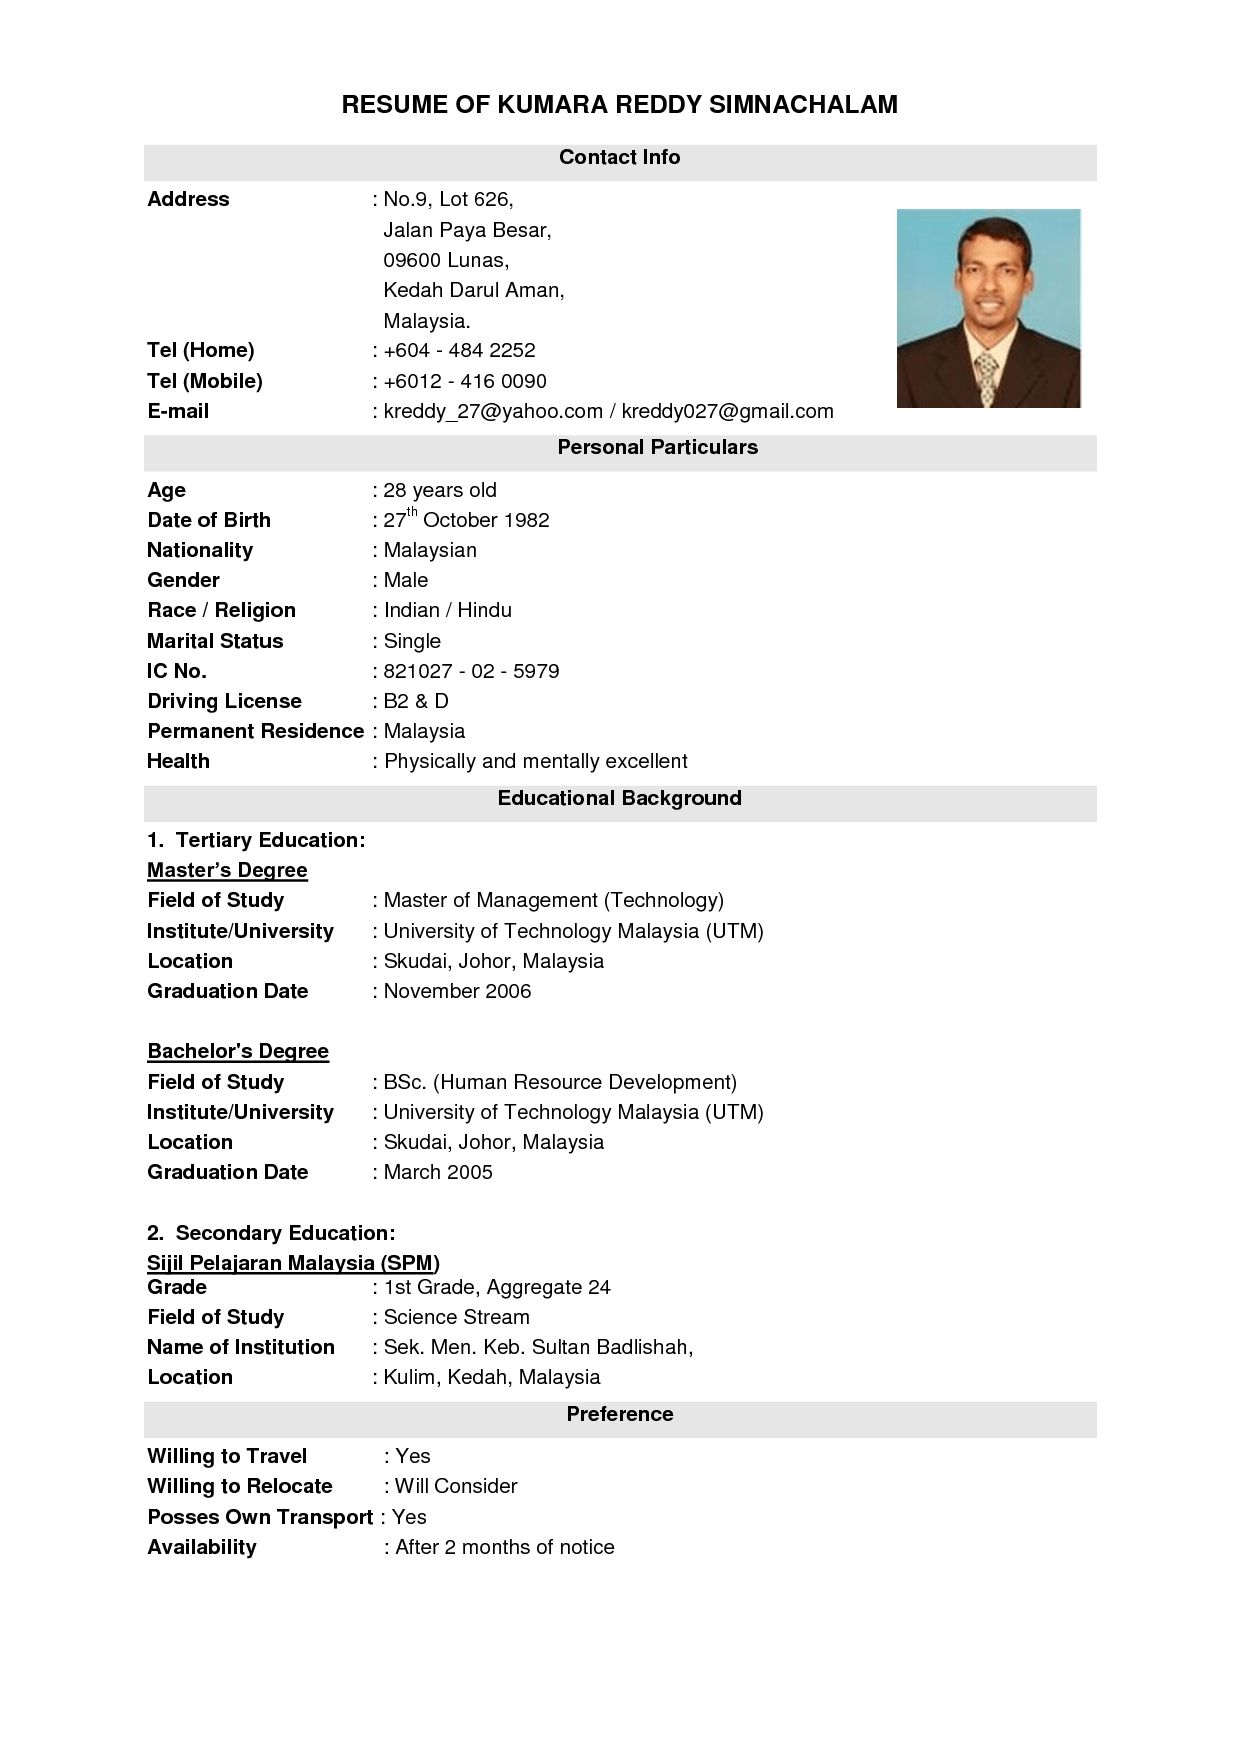 resume template free malaysia in 2020 Resume template